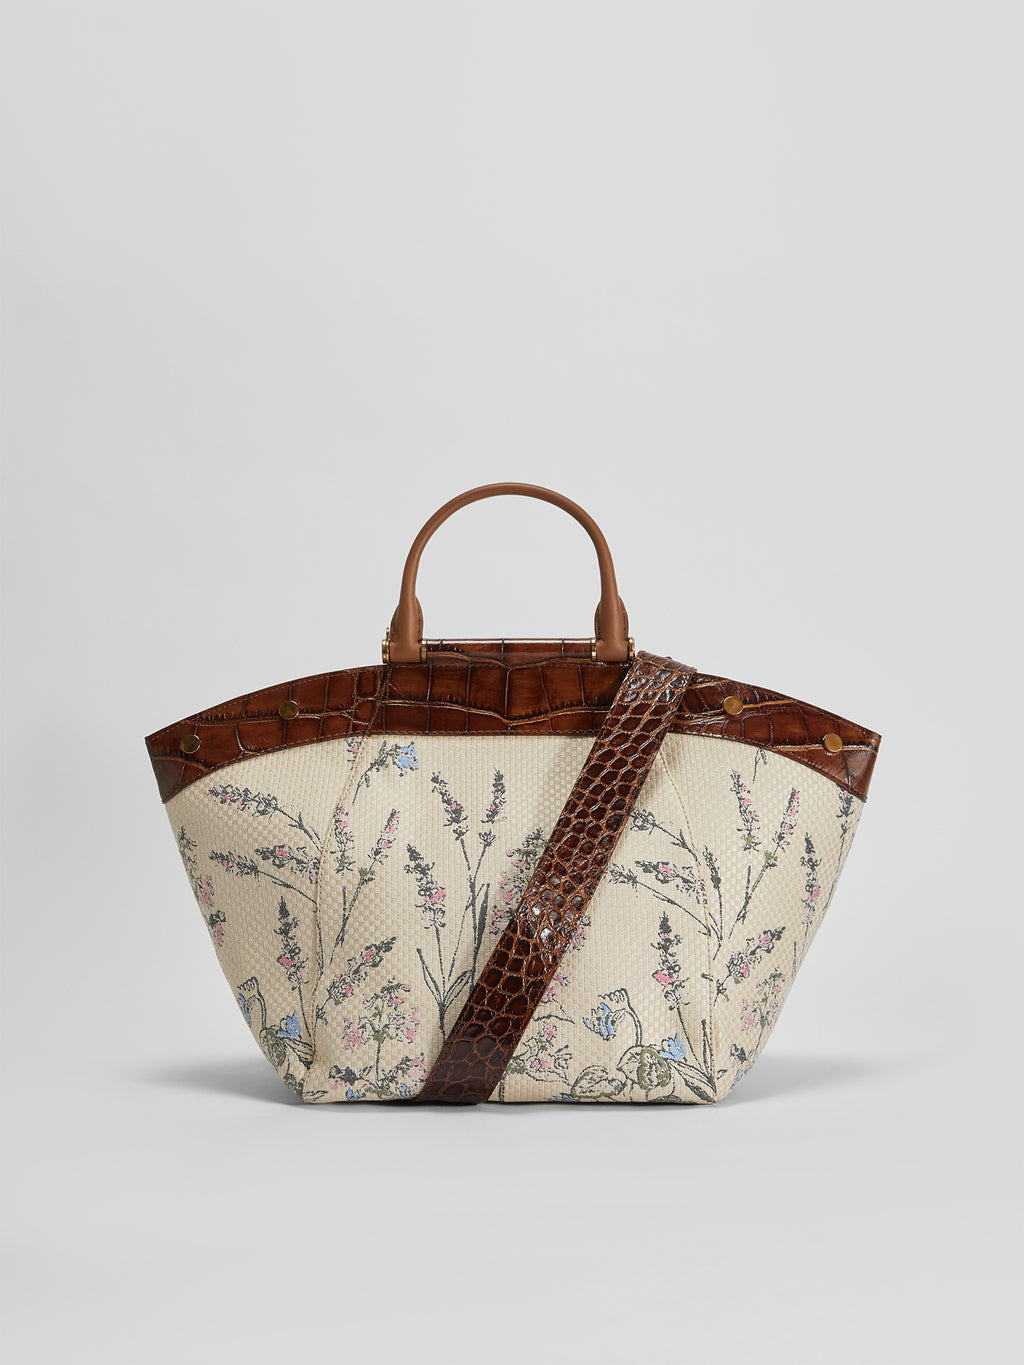 Max Mara Anita M4 Tote Bag in Jacquard & Leather